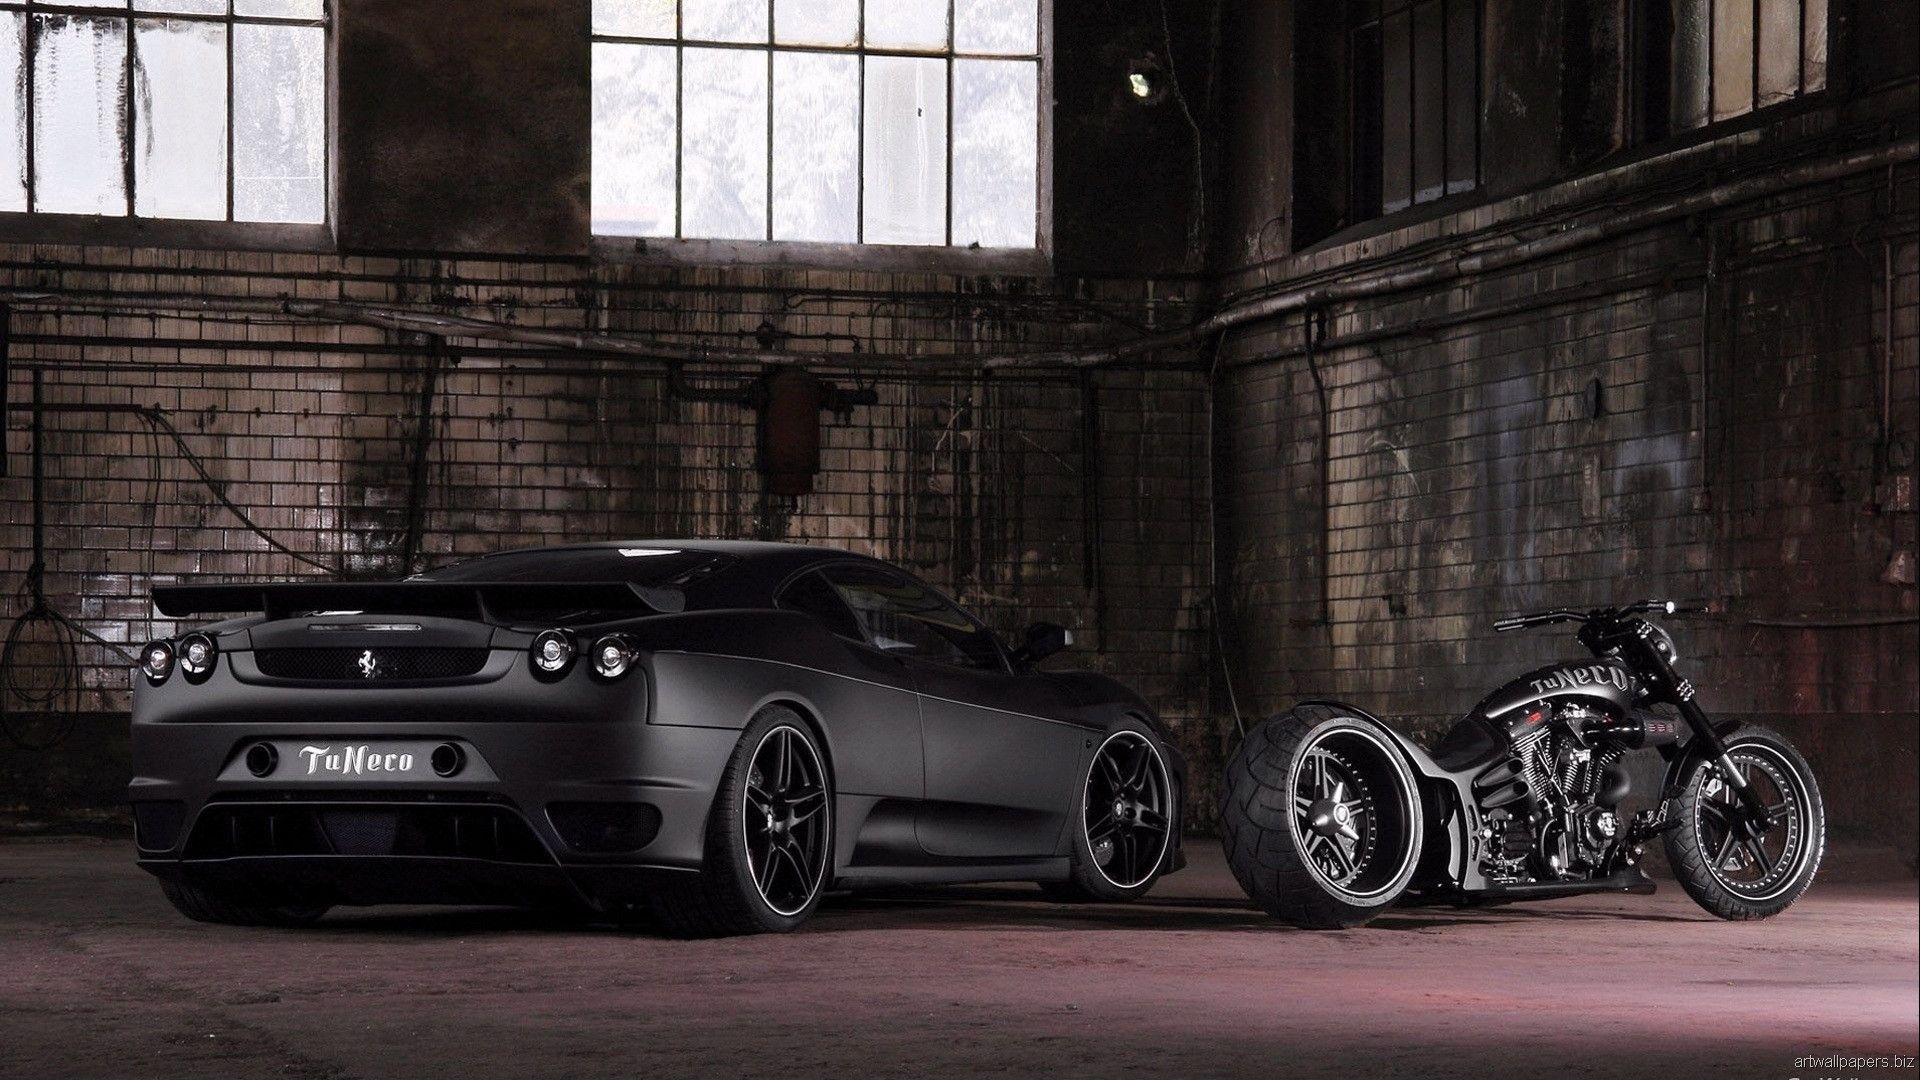 wallpaper hd cars p cave on car images 1080p high quality for